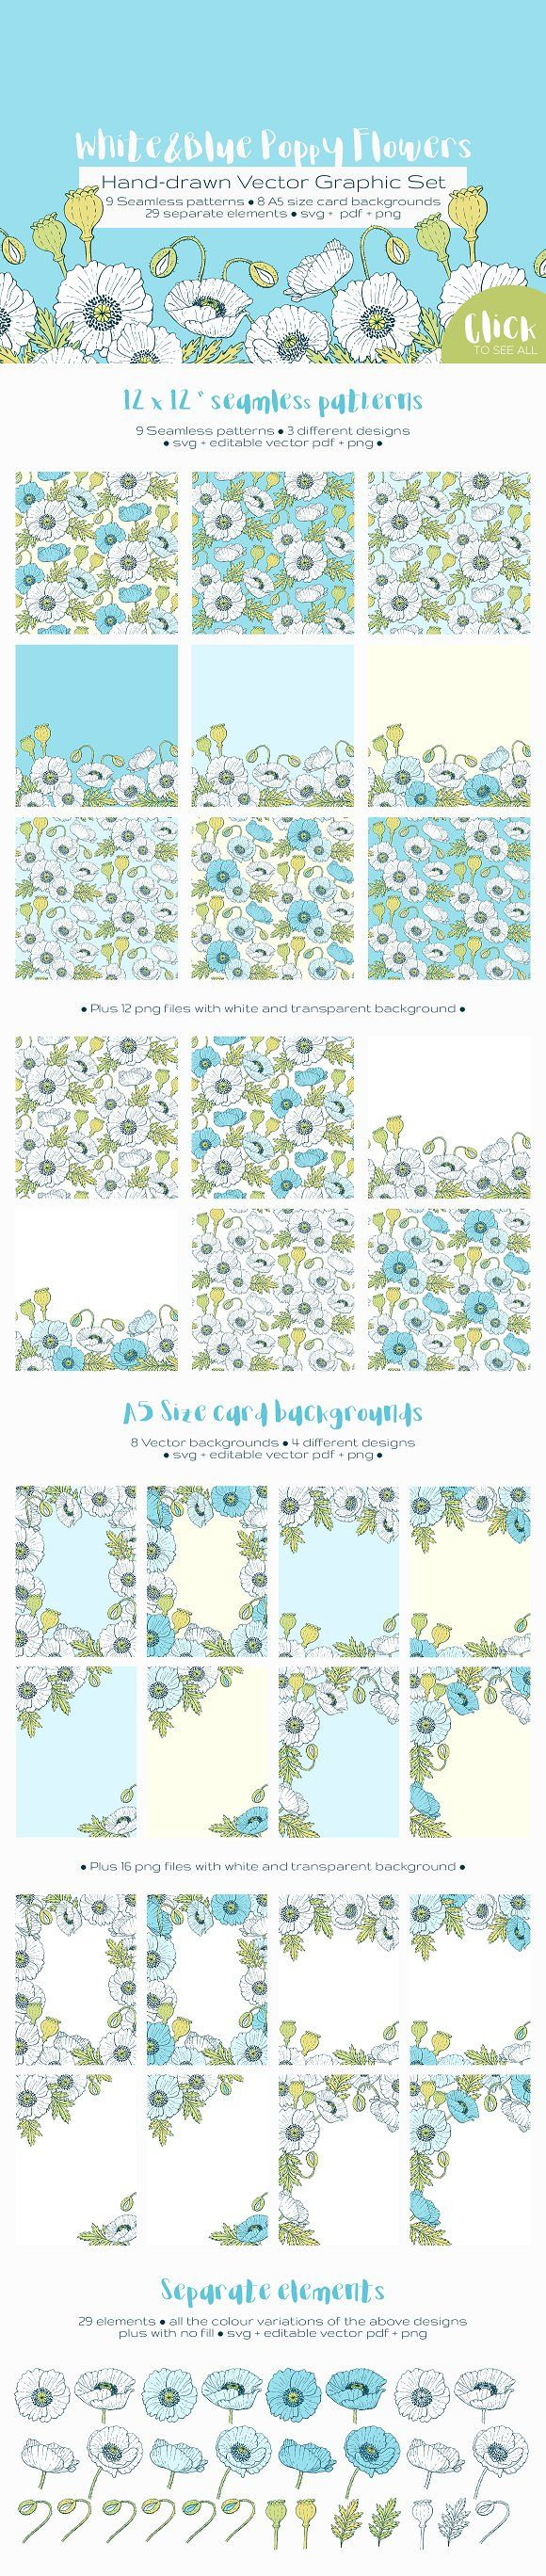 White and Blue Poppies Vector Set - This hand-drawn graphic set contains 3 seamless pattern designs and 4 A5 card background designs - both with white and white&blue flowers on different background colours - and also the separate elements to craft your own designs.  All the designs use the same colour palette so you can mix and match to find your favourite combination for sets or scrapbook layouts. By annabellak $12 #affiliatelink